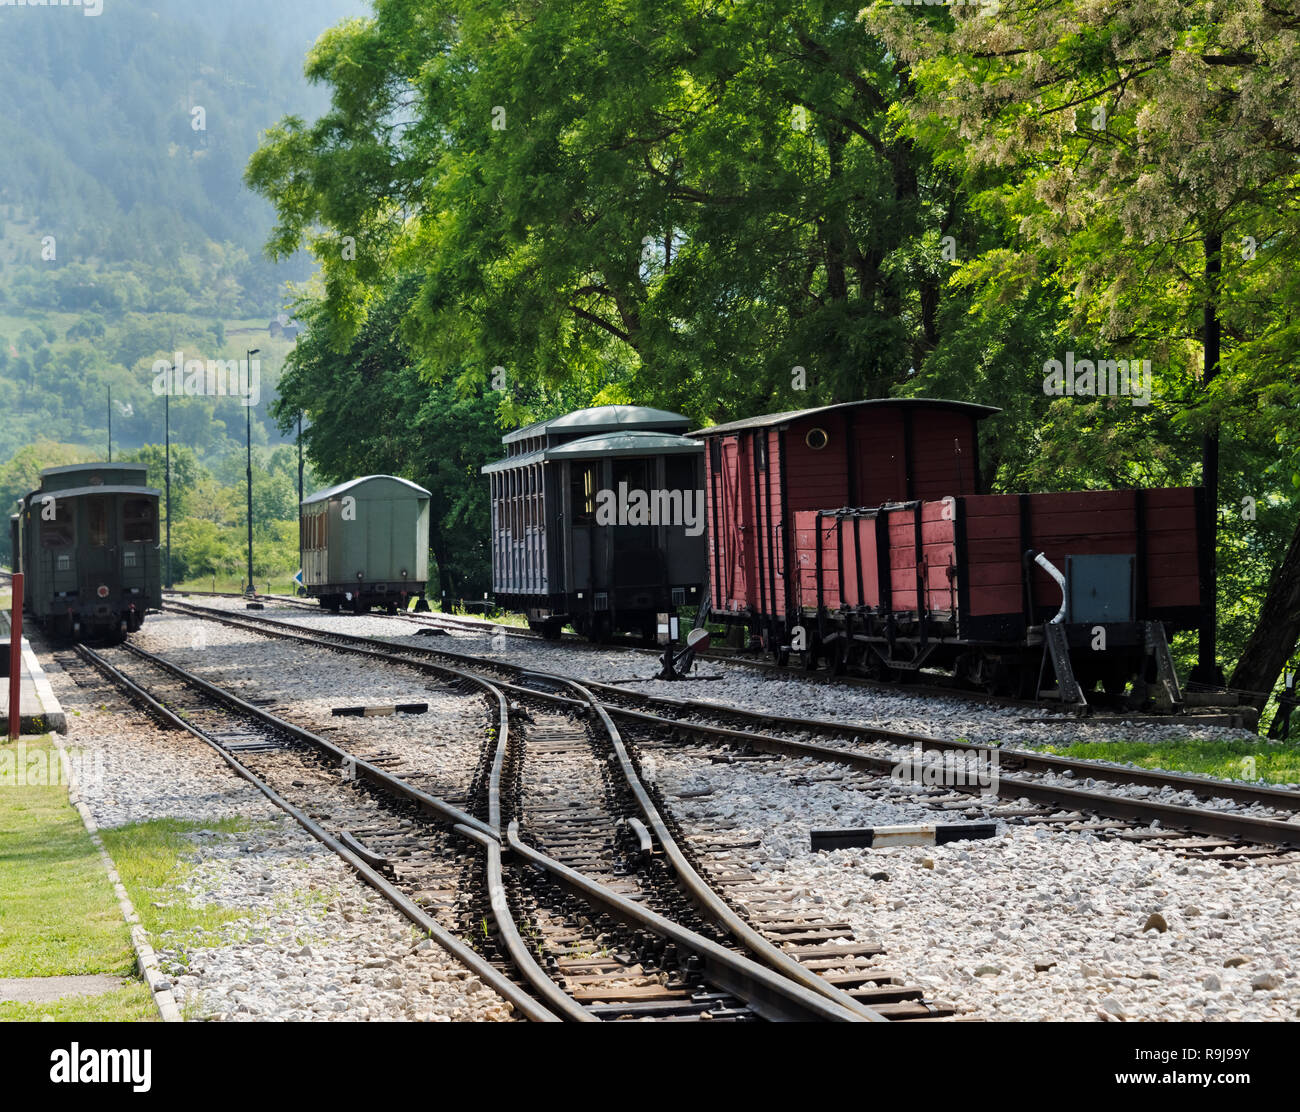 Sargan Eight train, a narrow-gauge heritage railway, Mokra Gora, Serbia - Stock Image